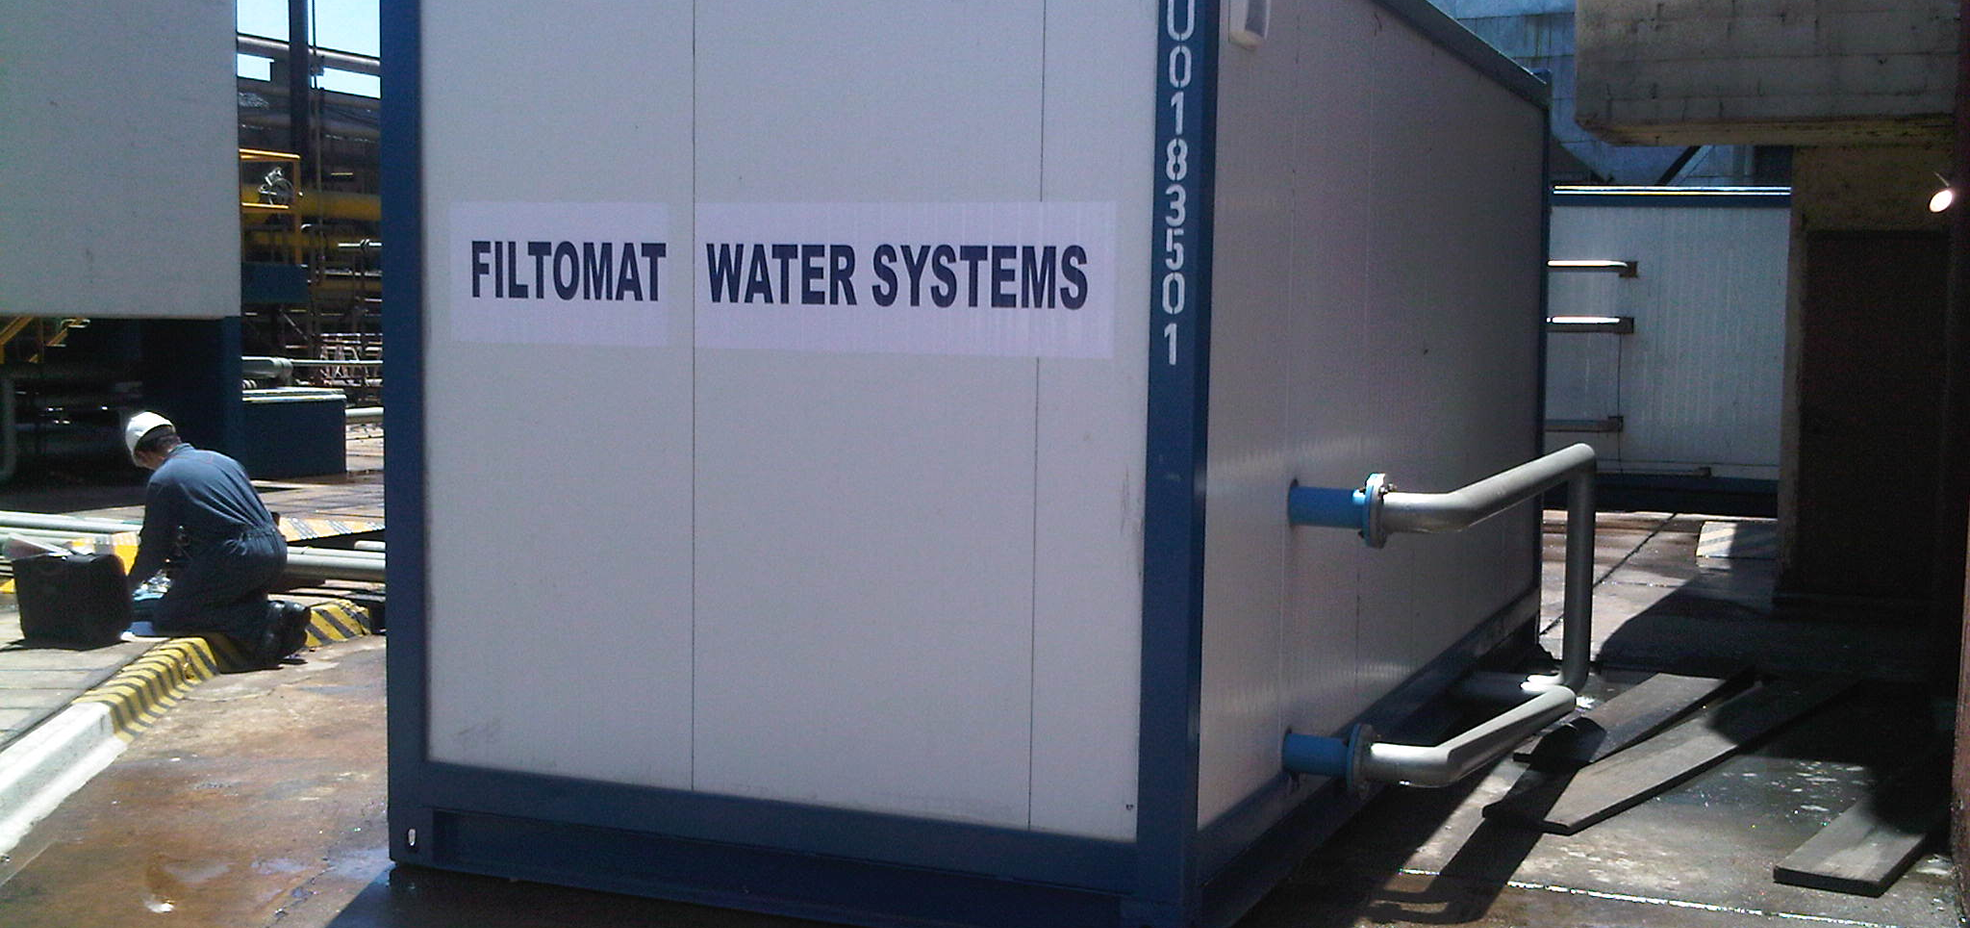 Filtomat Water Systems | Filtros Industriales